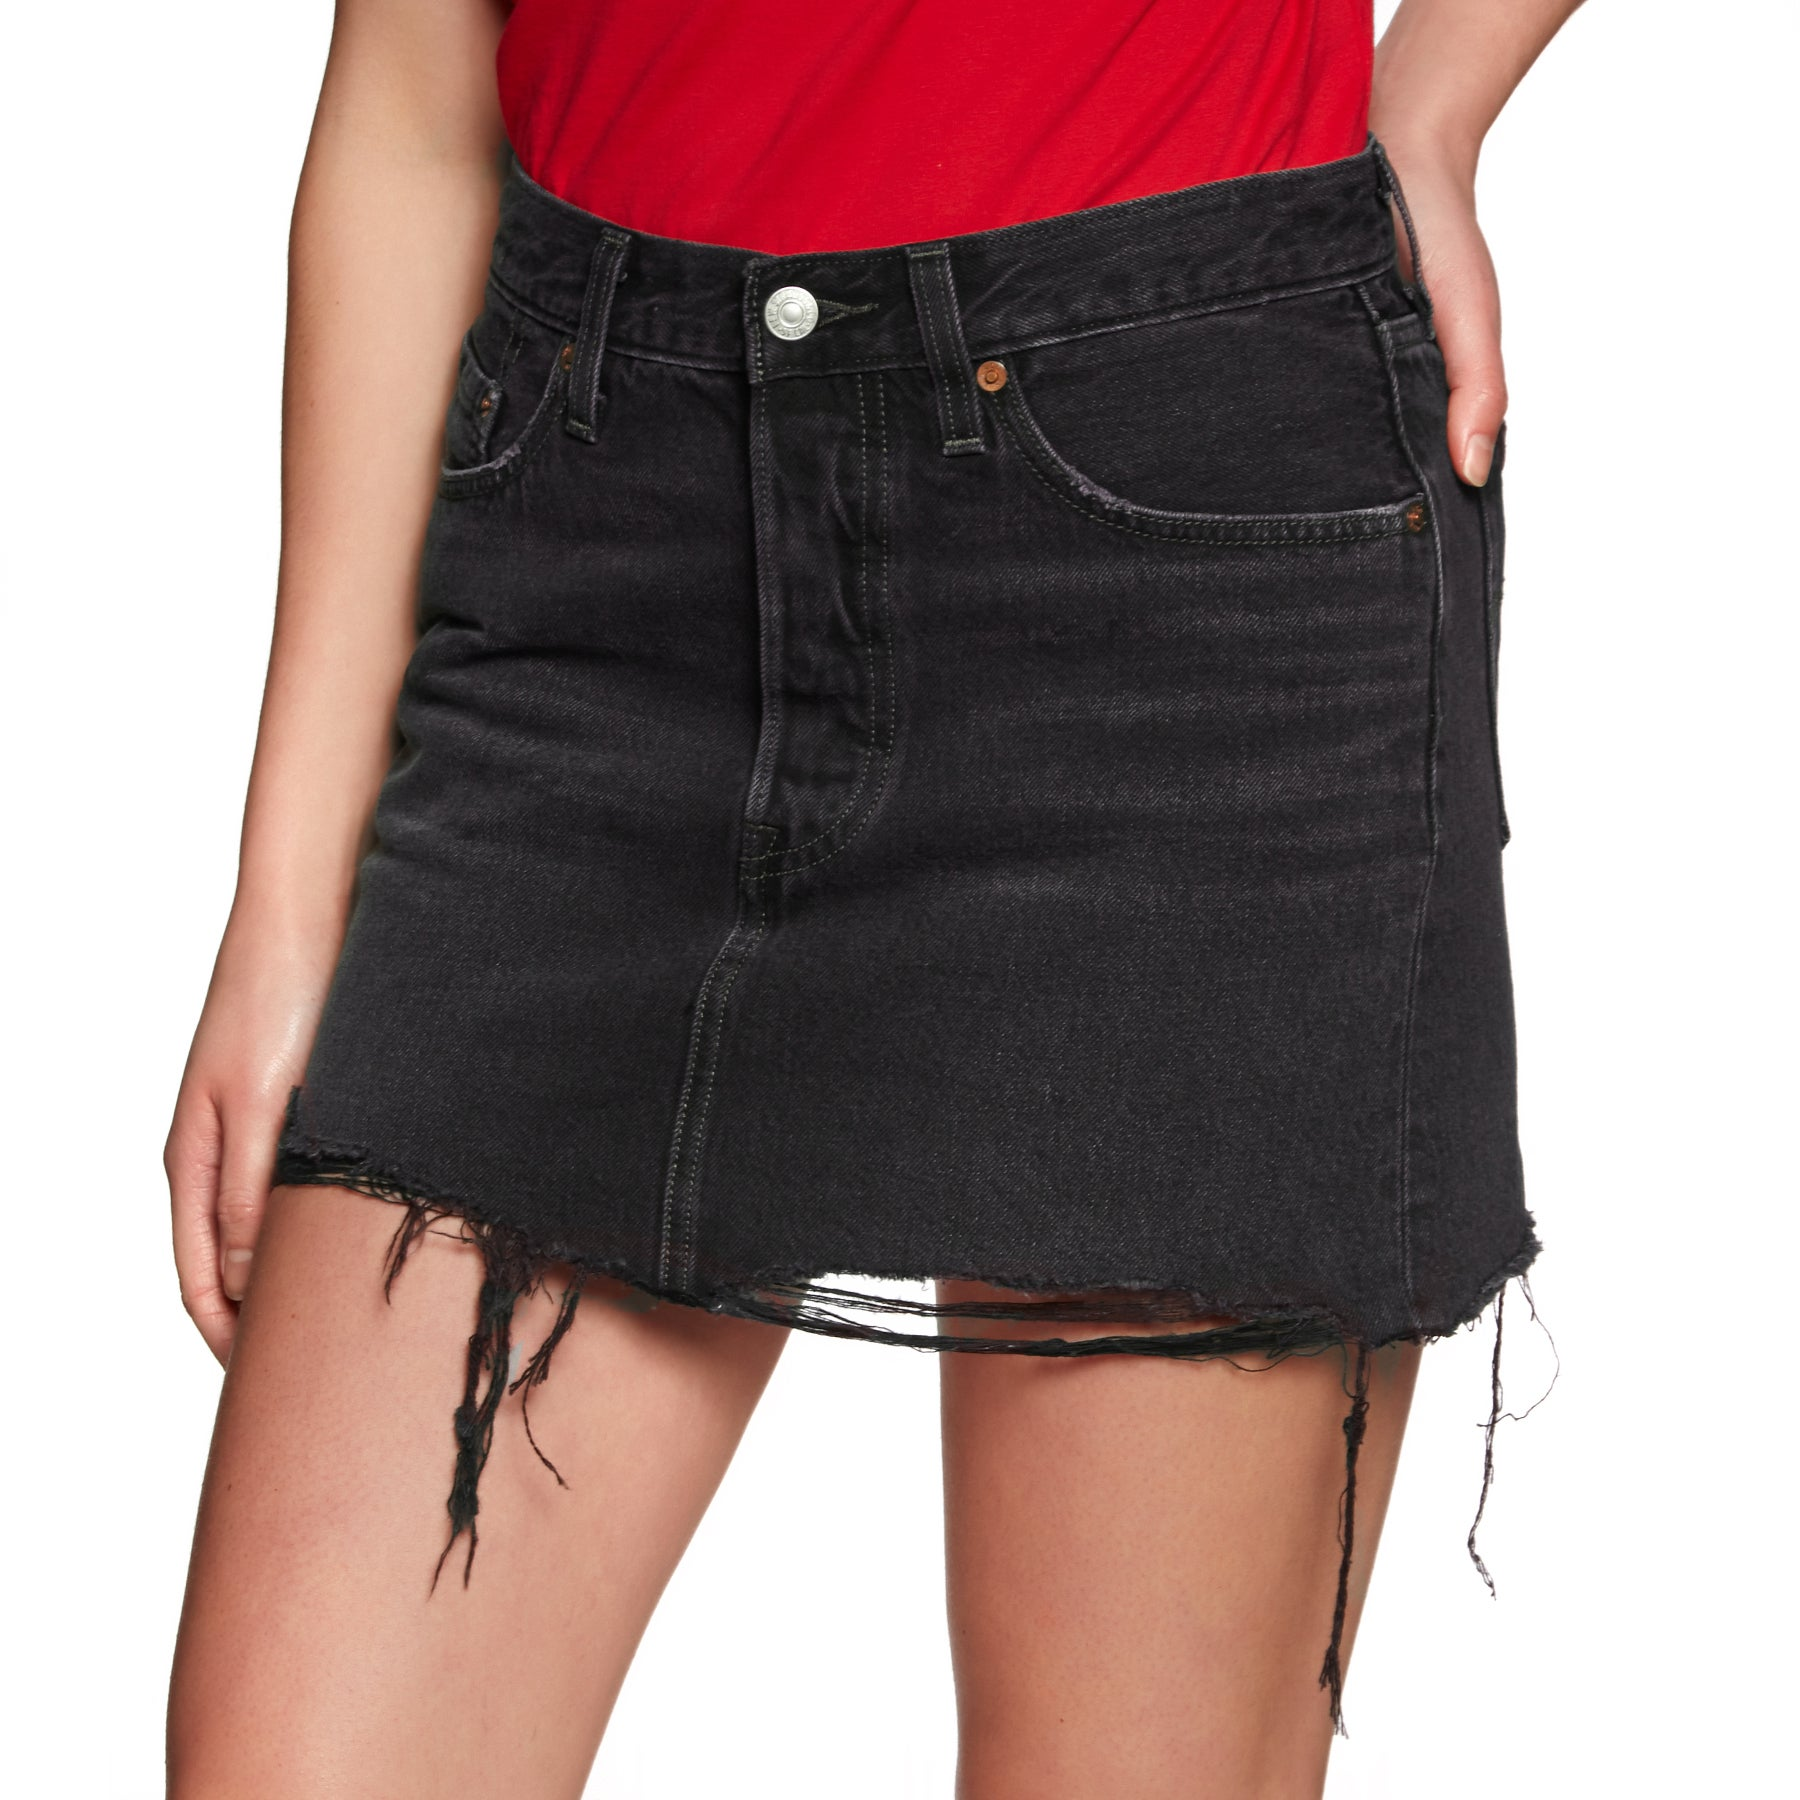 08f7f2db3 Levis Deconstructed Womens Skirt/dress Skirt - Ill Fated All Sizes ...